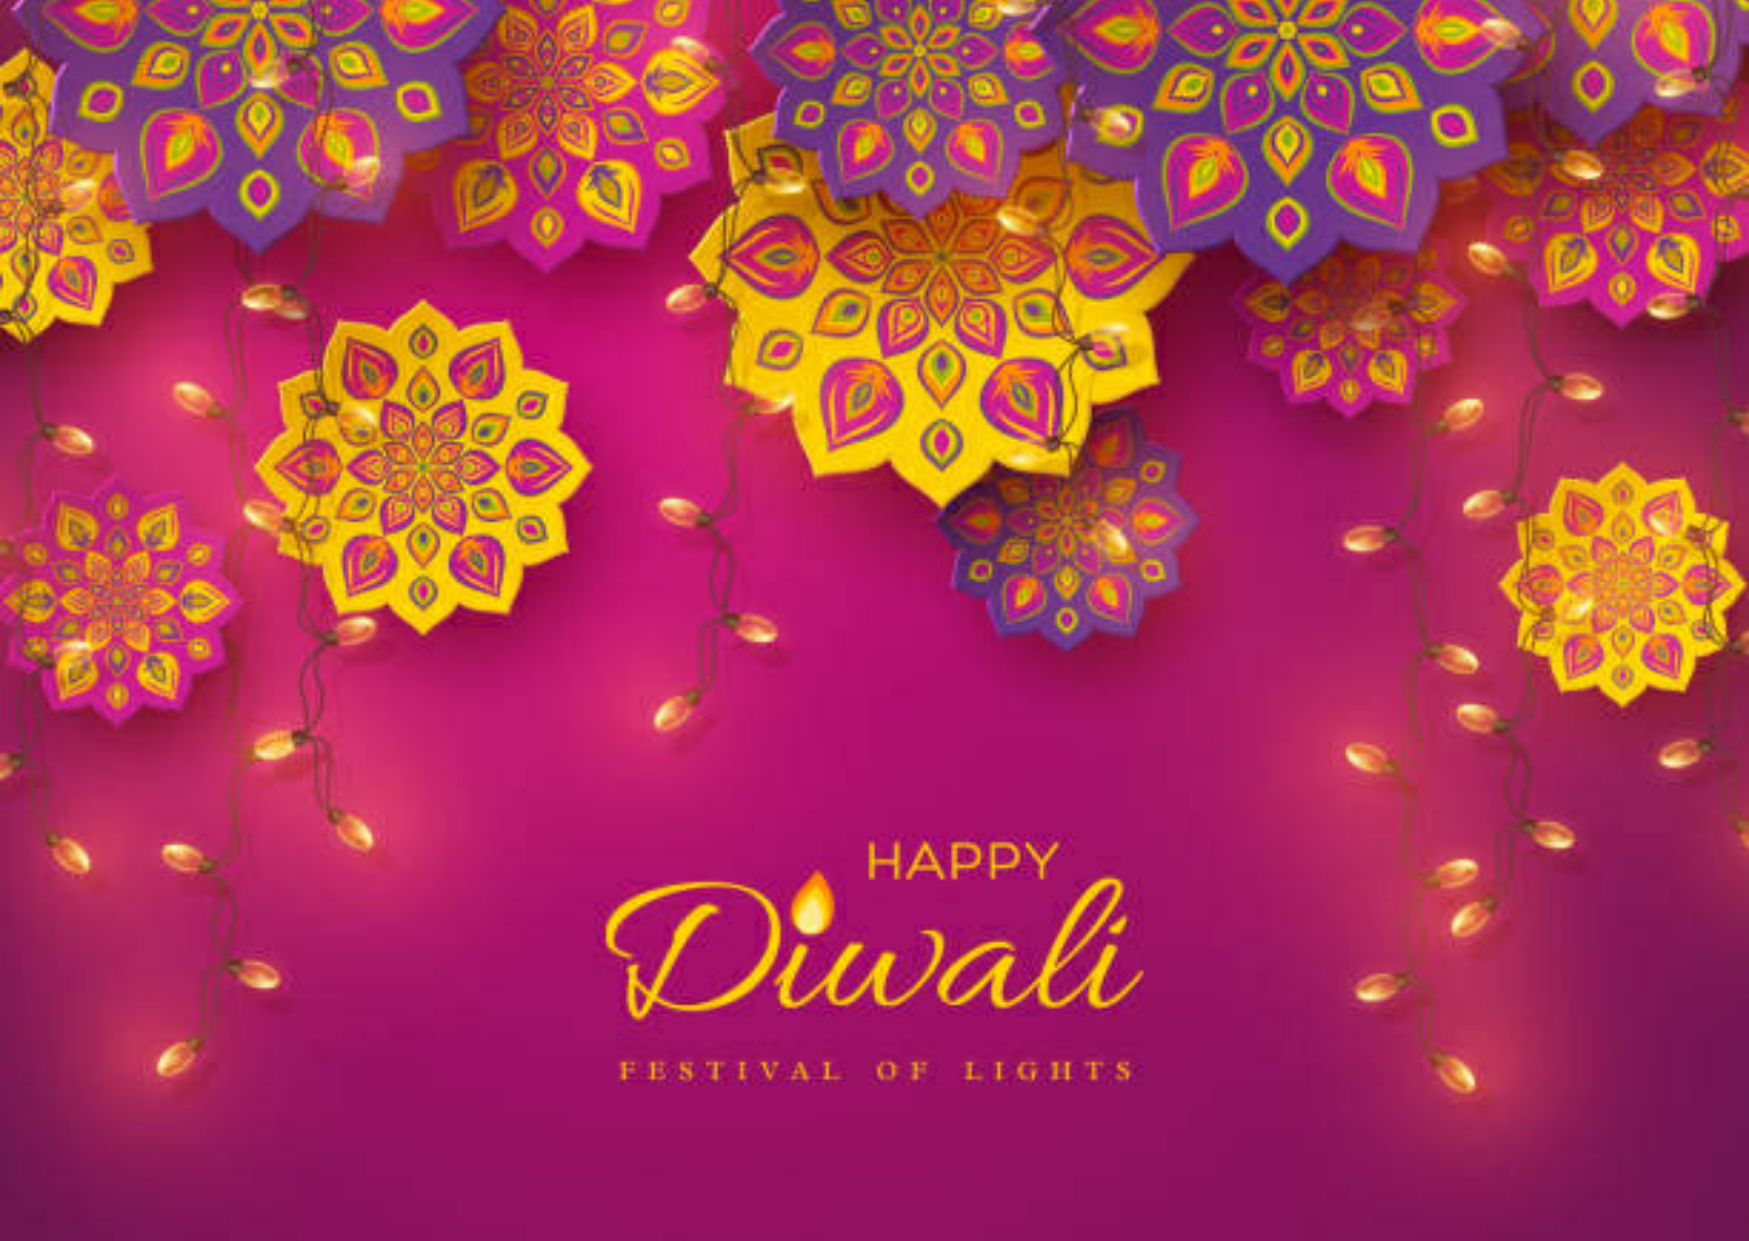 Happy Diwali Wishes With Images, Quotes, Status, Greeting, Messages, Status,